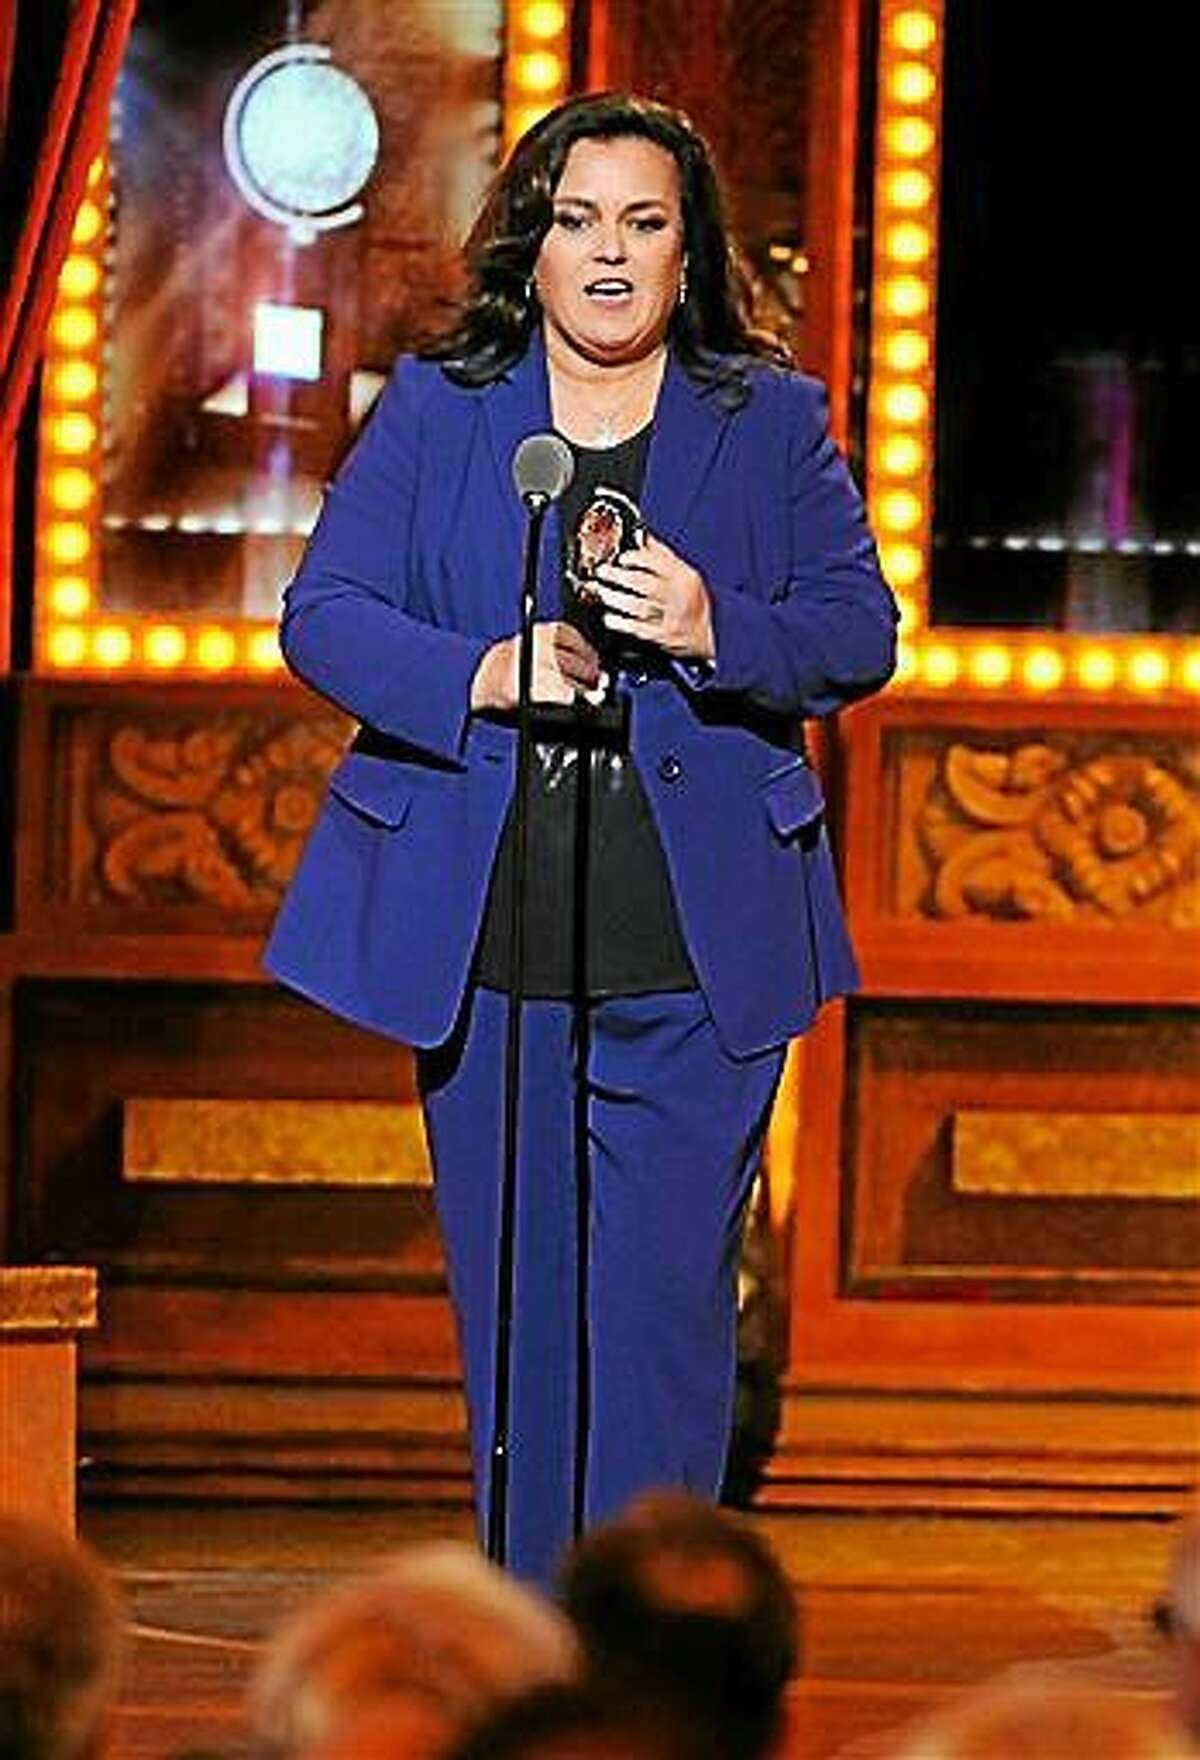 File-This June 8, 2014, file photo shows Rosie O'Donnell accepting the Isabelle Stevenson Award on stage at the 68th annual Tony Awards at Radio City Music Hall in New York. O?Donnell is leaving ?The View? for a second time. Her publicist, Cindi Berger, said Friday, Feb. 6, 2015, that the outspoken co-host of the ABC daytime chat show is exiting next week to focus on her five children after the breakup of her marriage. (Photo by Evan Agostini/Invision/AP)